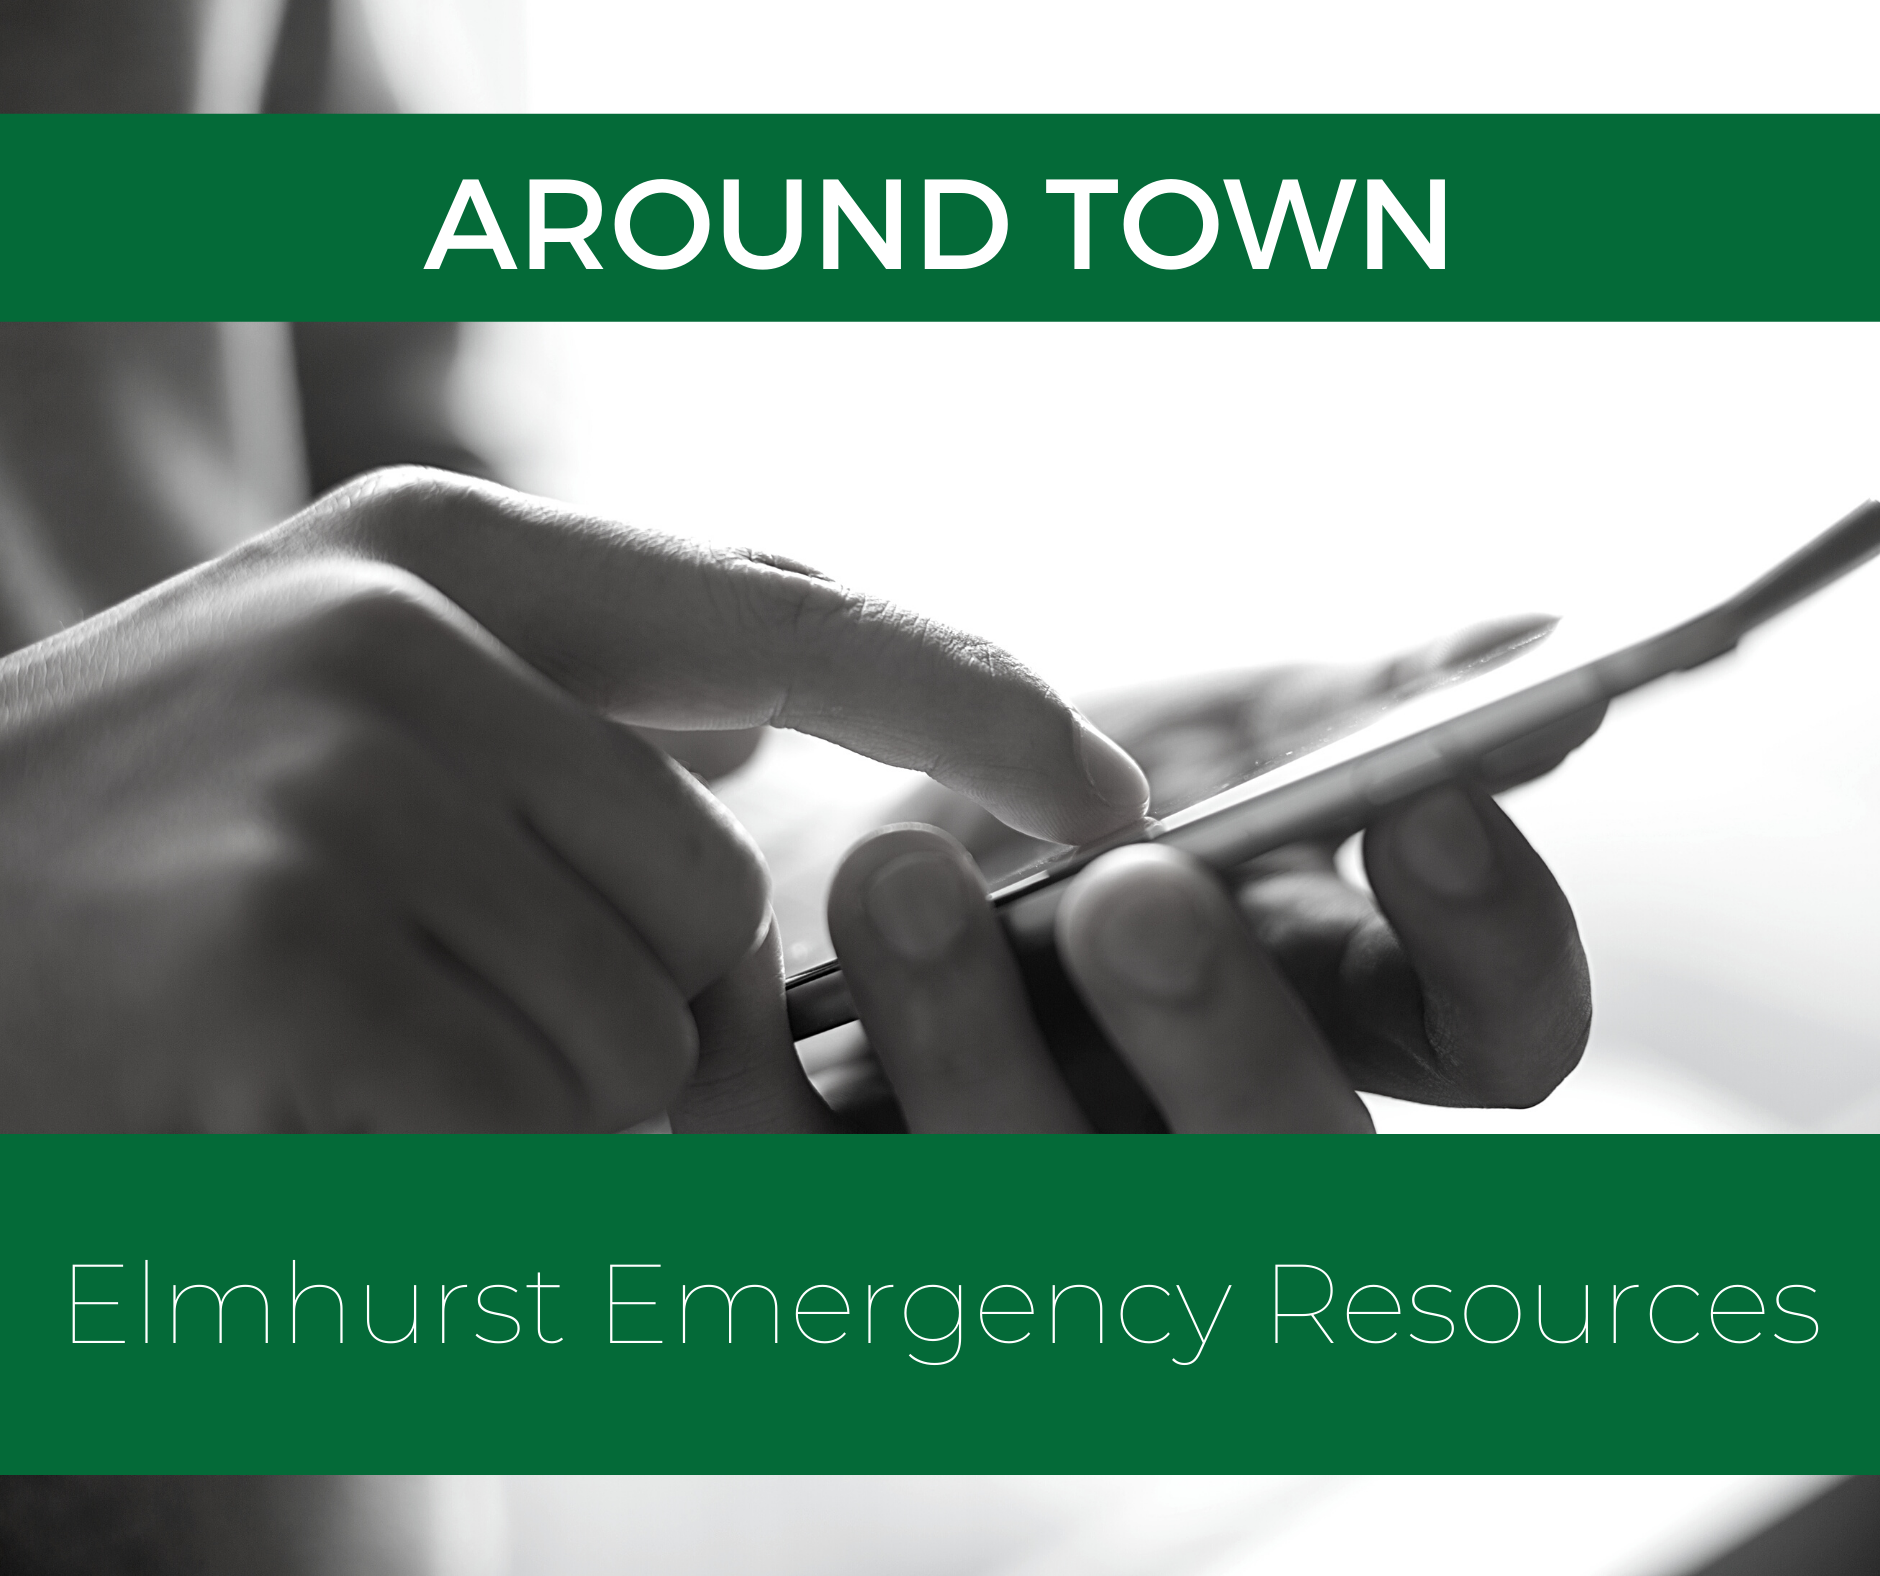 Around Town: Ways to Help While #ElmhurstStaysHome